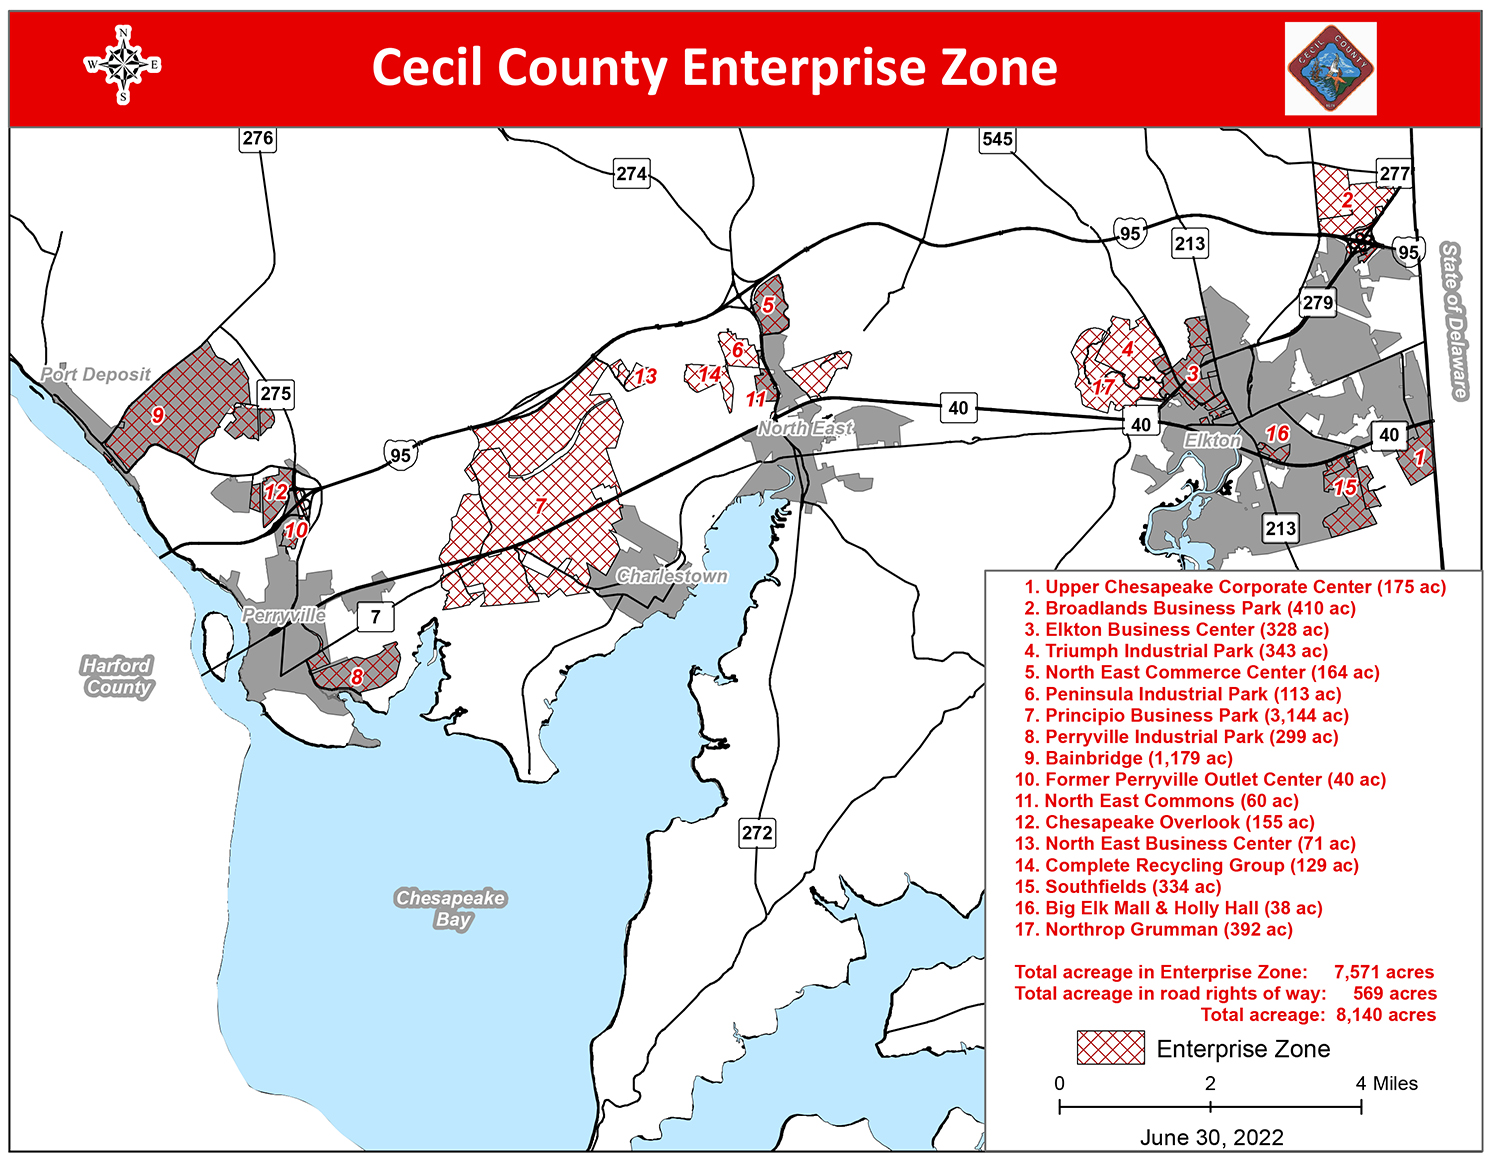 Cecil County Enterprise Zones